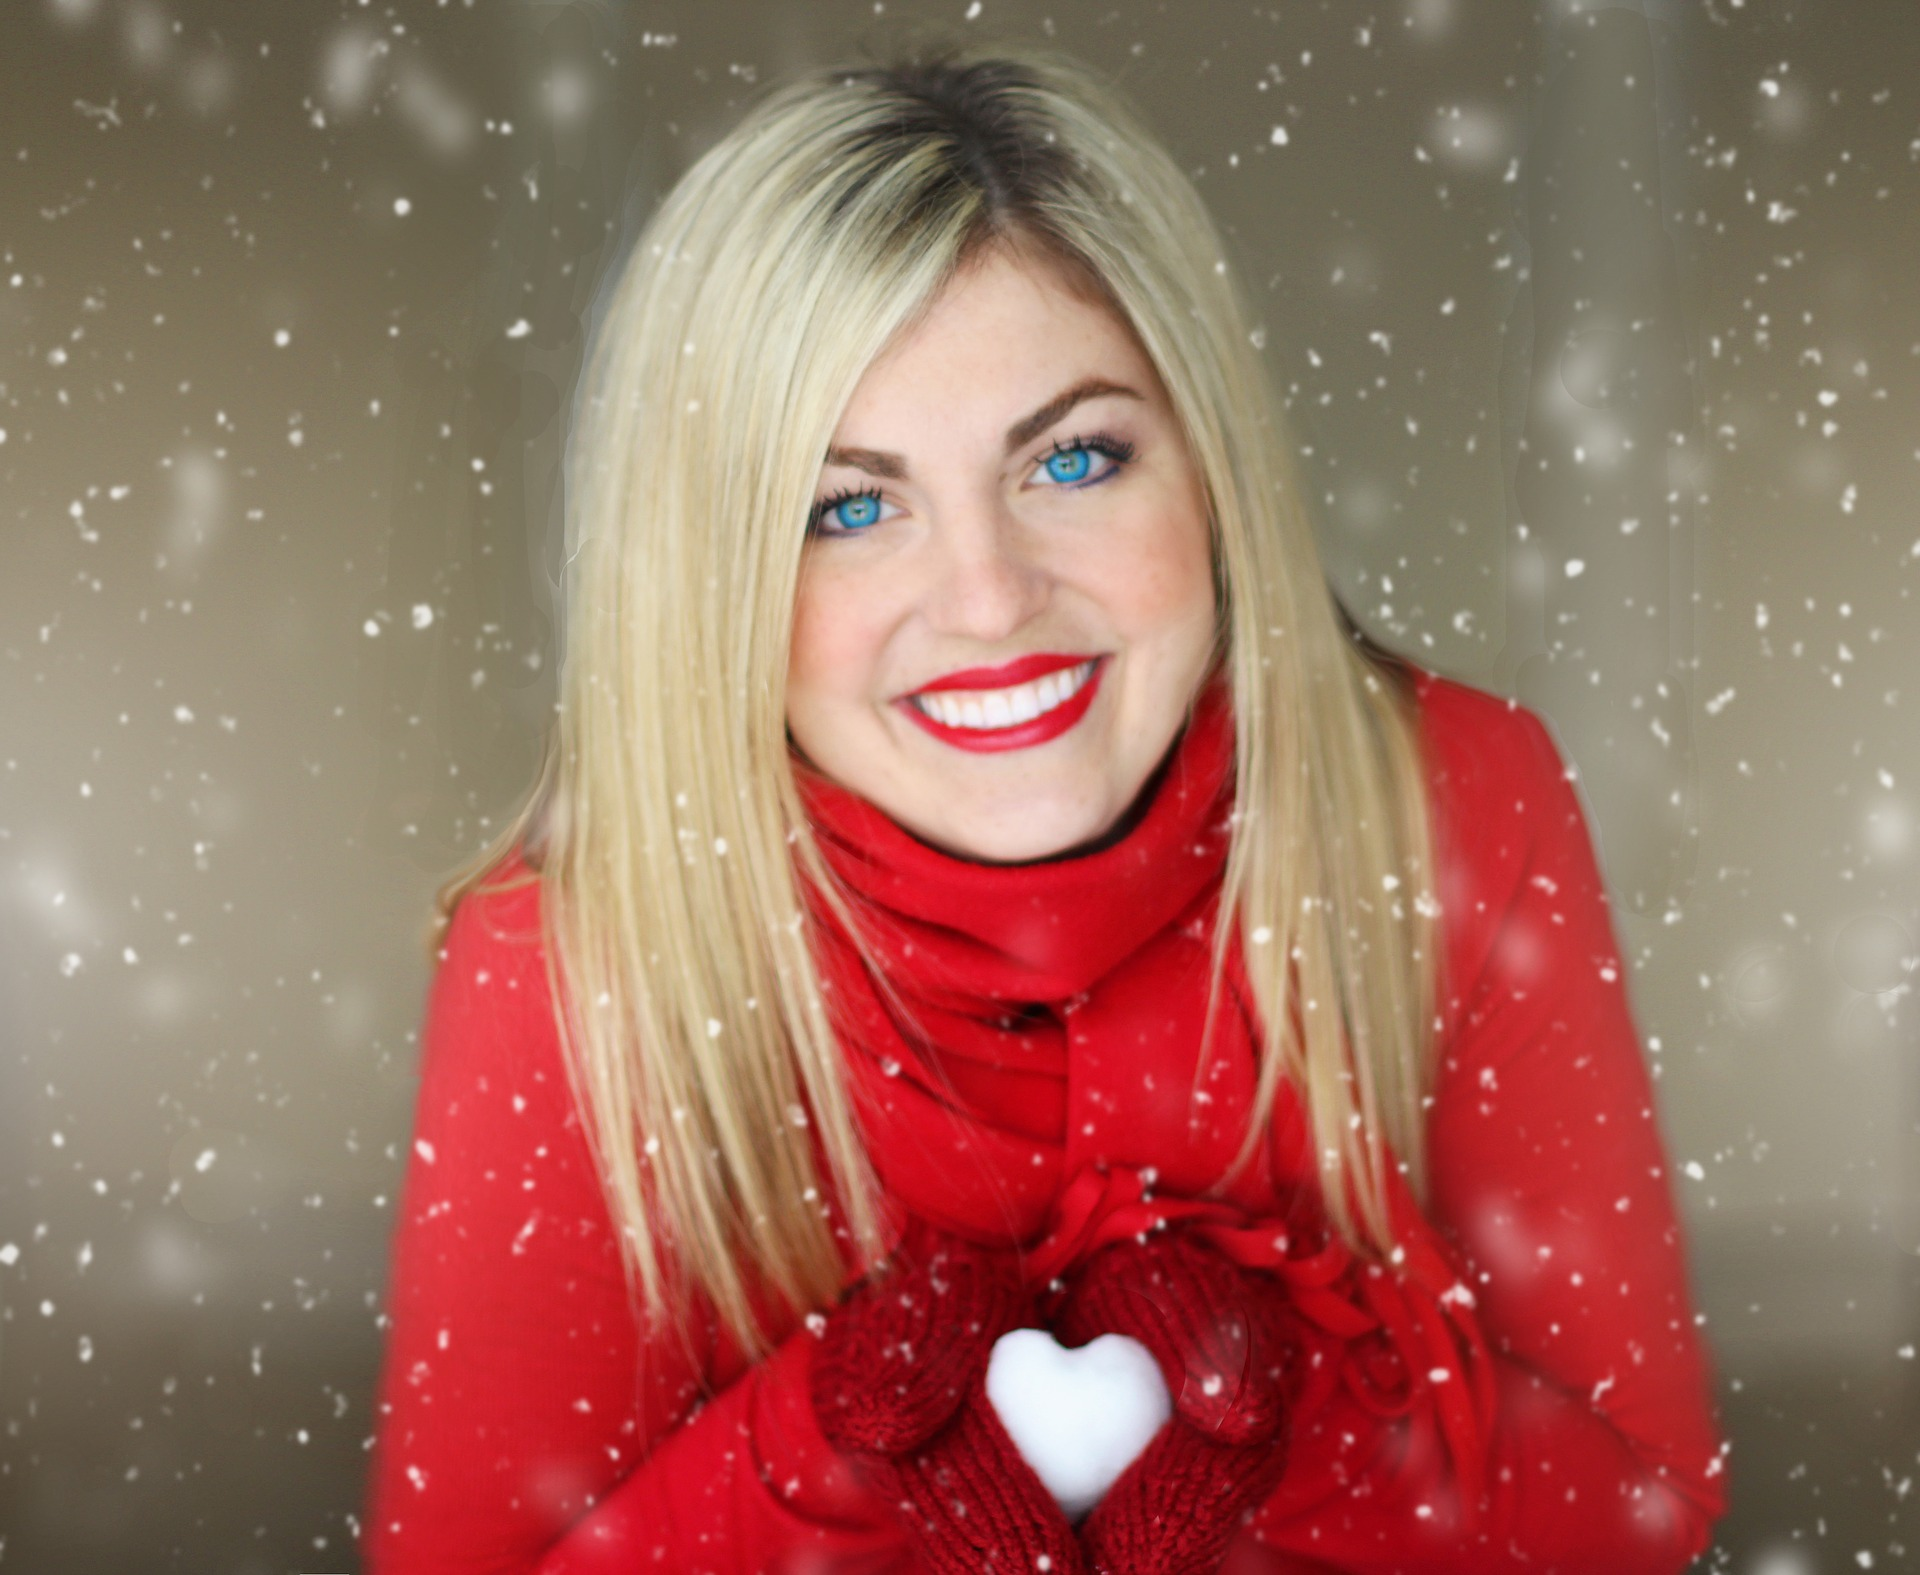 christmas girl in red with blue eyes